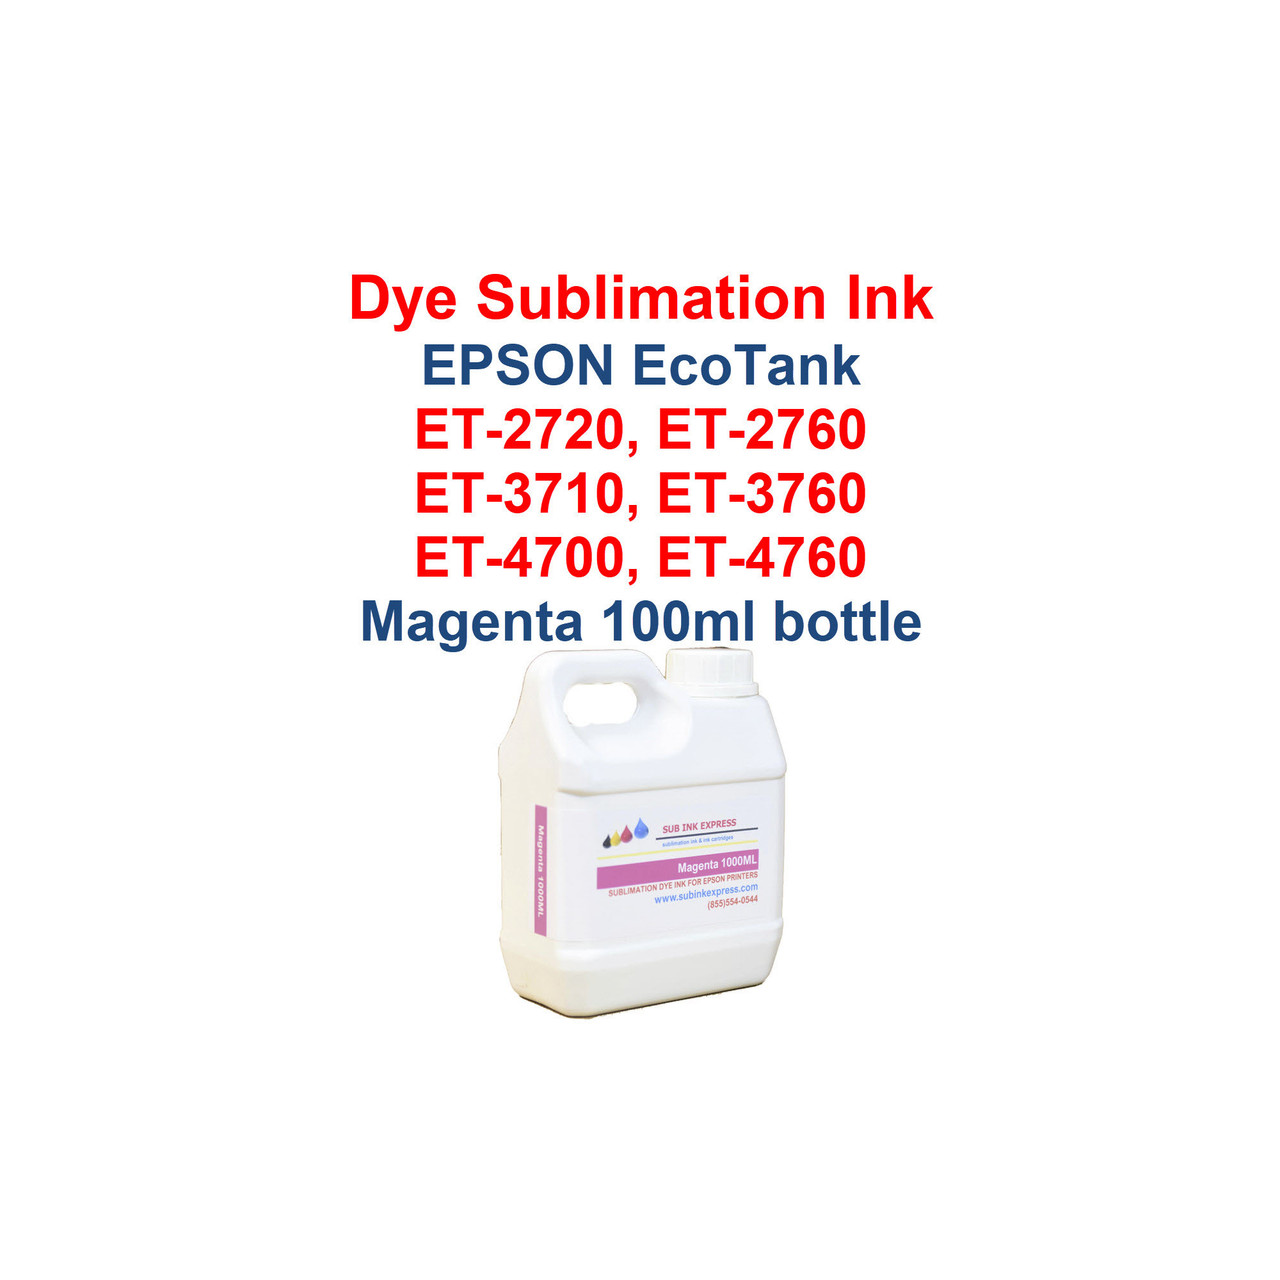 >>> Los Angeles same day delivery available (Contact us for pricing) <<<  Magenta - 1000ml bottle Dye Sublimation ink for Epson EcoTank et-2720 et-2760 et-3710 et-3760 et-4700 et-4760 printers  >>> This bottle size is for refilling the Epson bottles or our 70ml and 135ml bottles <<<  Package includes:  Magenta 1000ml bottle Dye Sublimation ink - 1 Magenta  Dye Sublimation Ink  Heat Transfer printing  T-Shirts, Hats, Metal, Ceramic, Mugs, Plates, etc...  Works with all substrates    No extra software  No color profiles needed